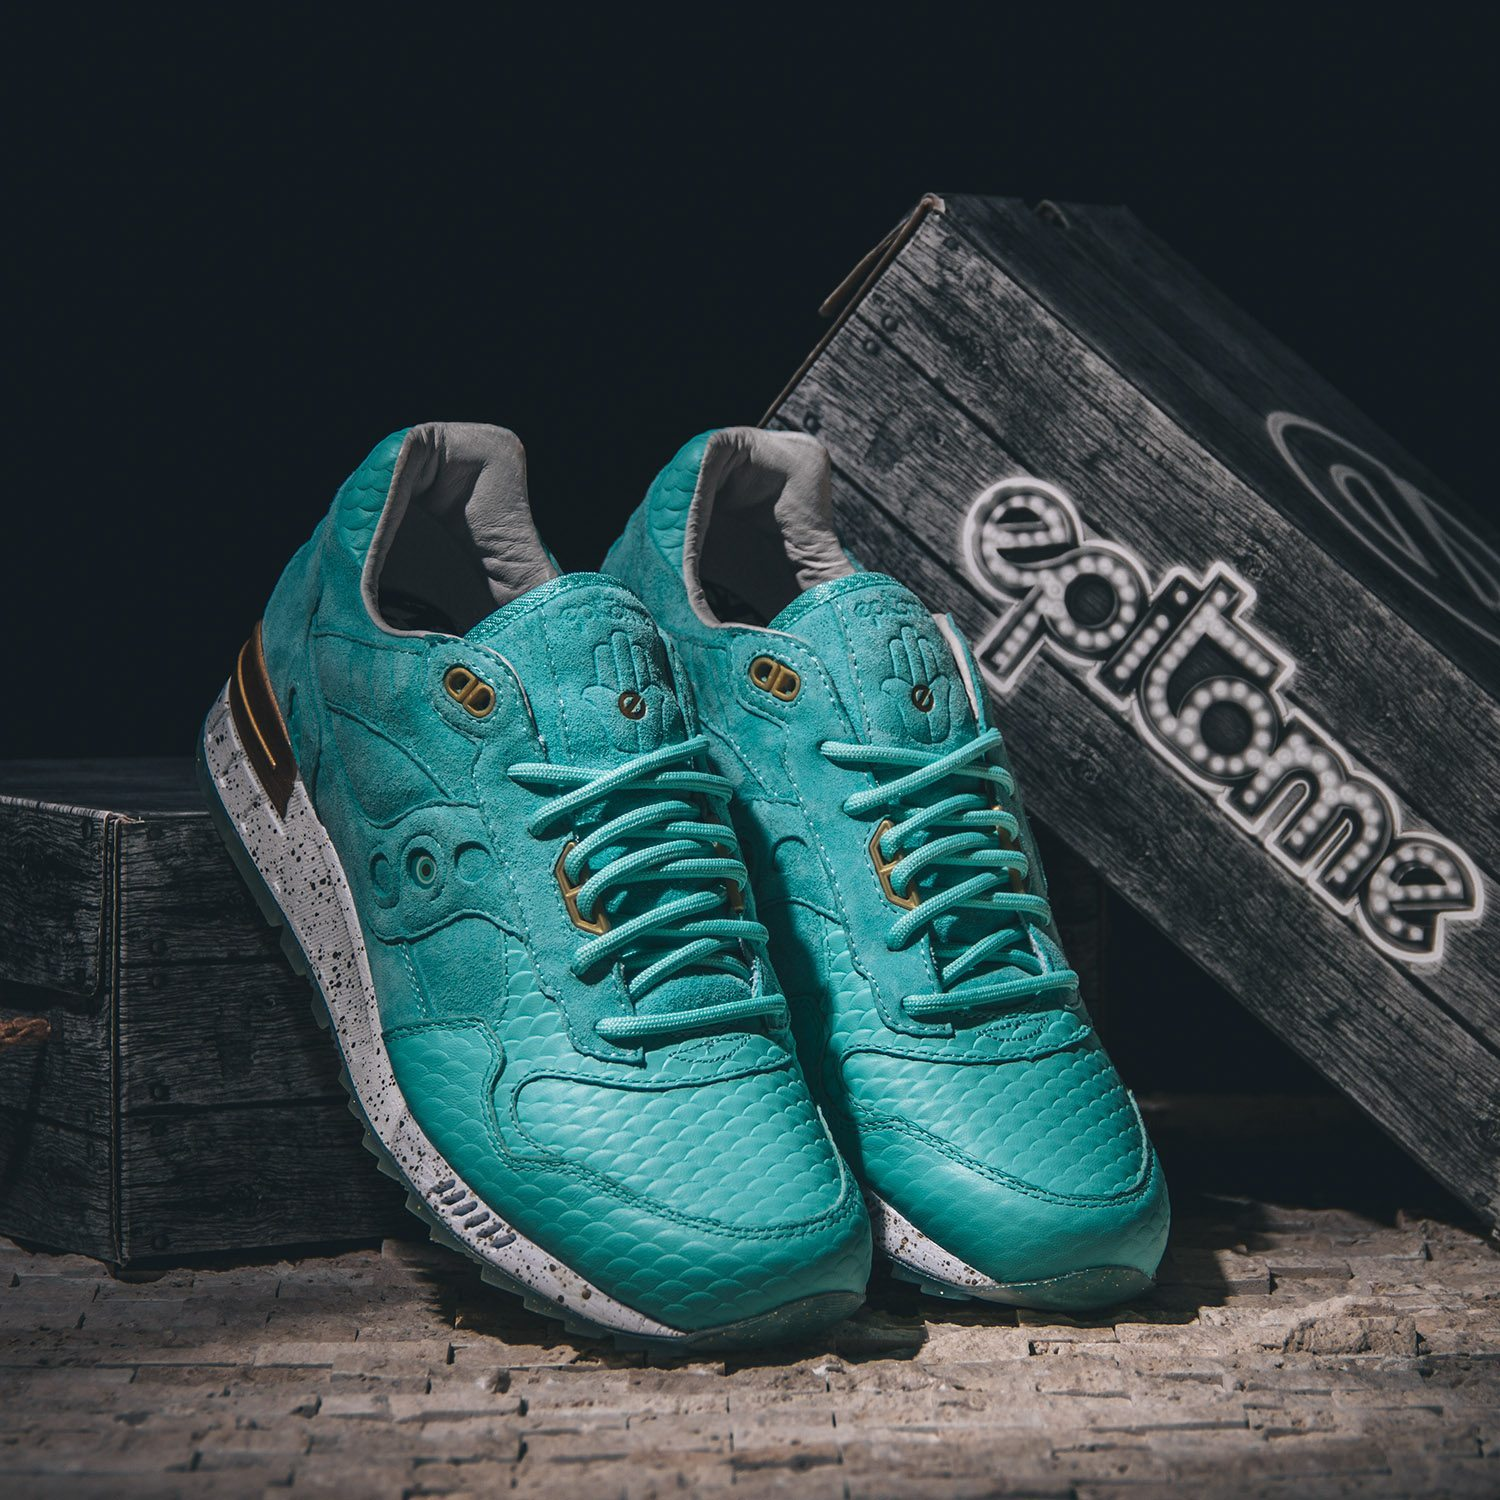 Saucony x Epitome The Righteous One 110